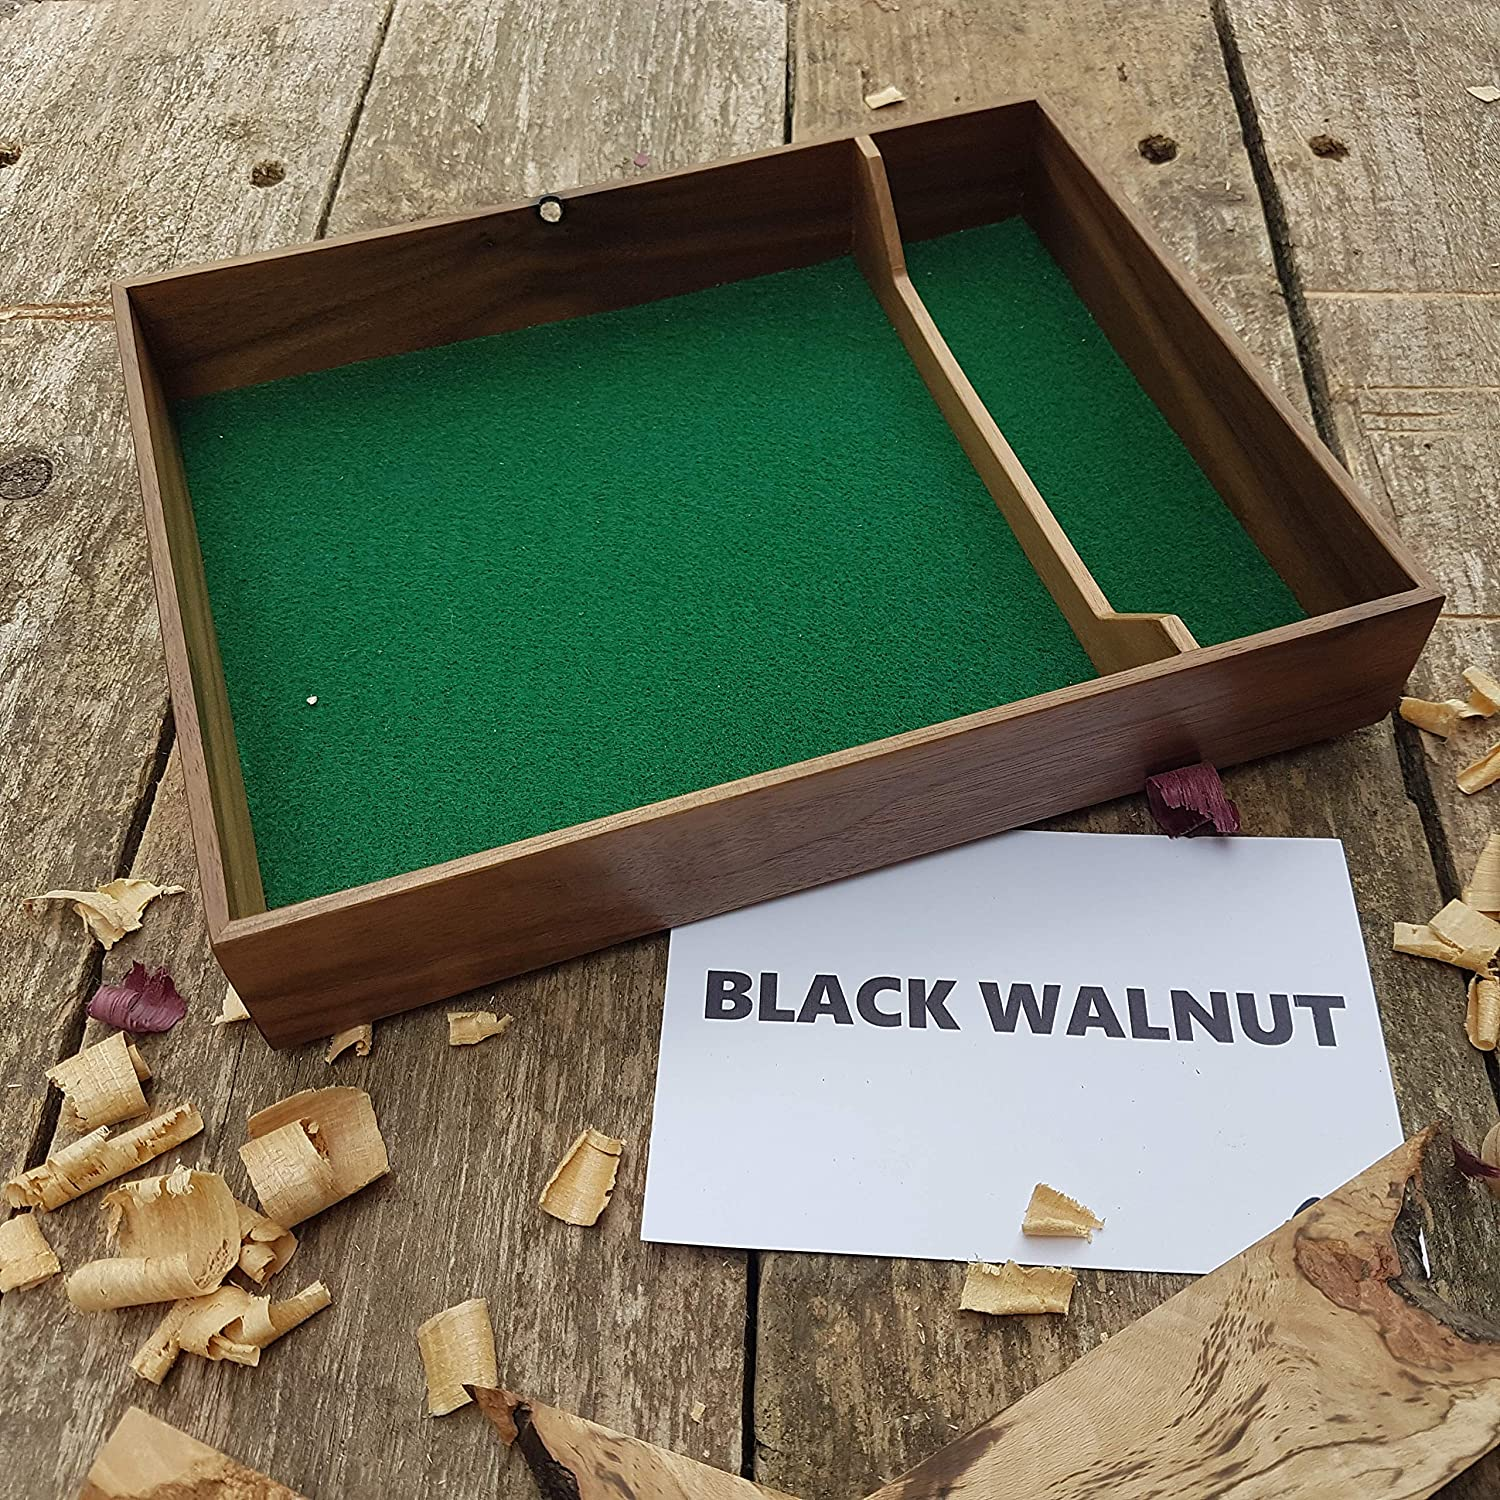 Black Walnut dice tray - dice box for dungeons and dragons, pathfinder, or any rpg - great as valet tray or gift for a Critical Role fan